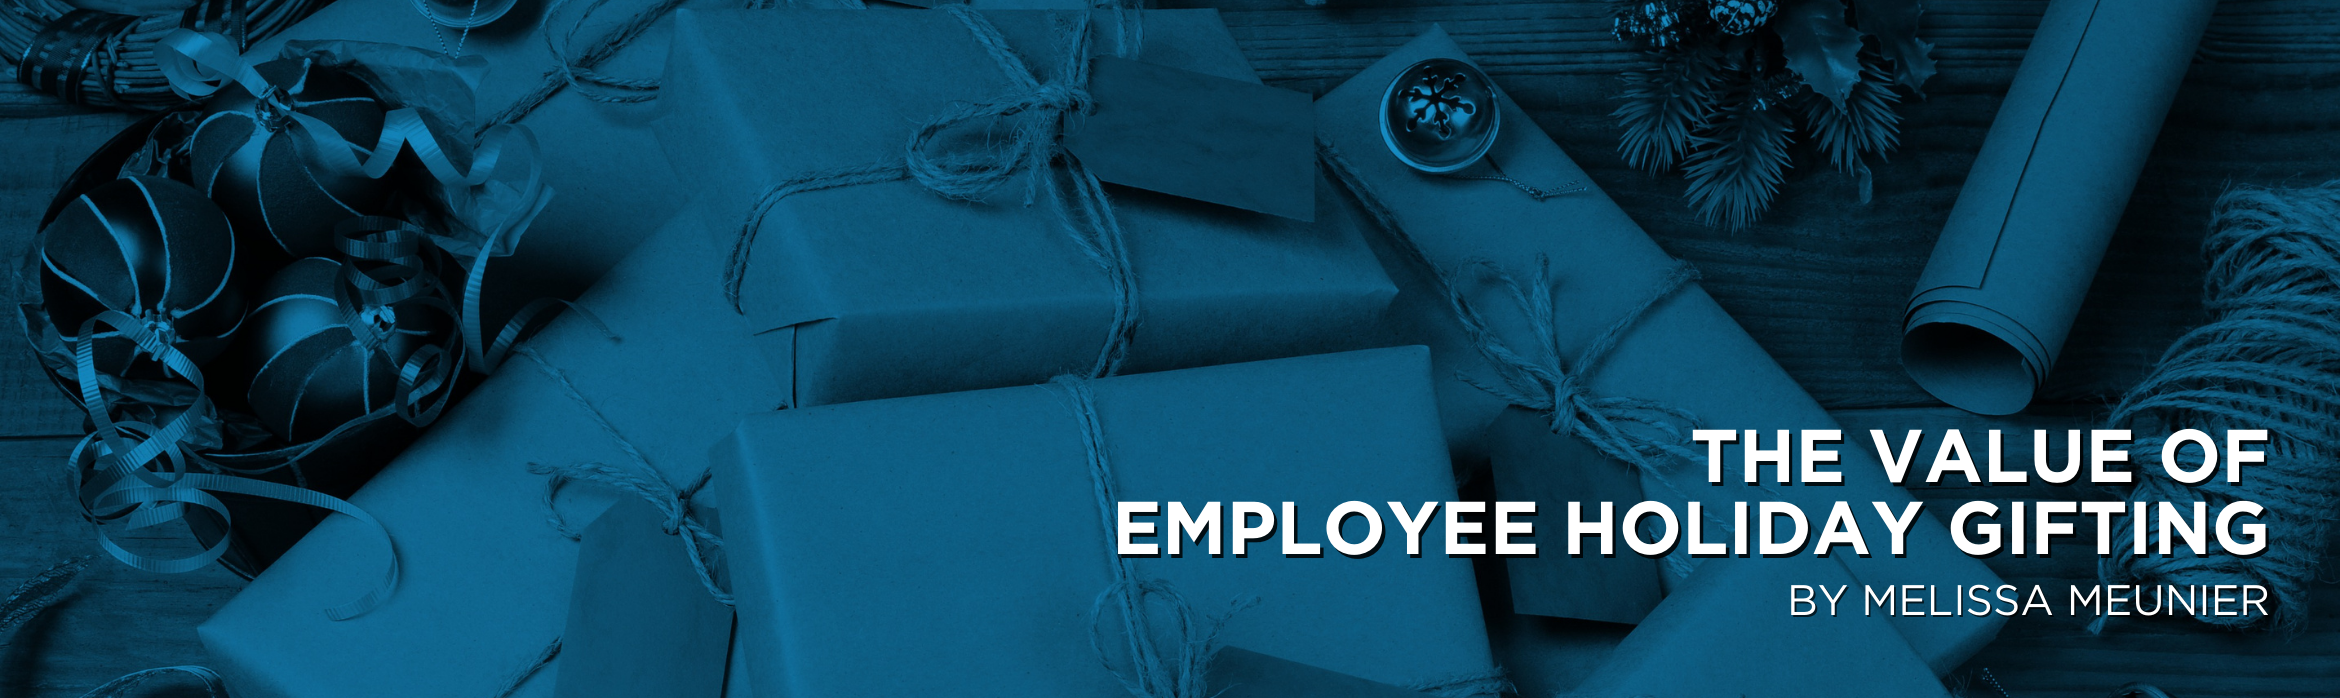 The Value of Employee Holiday Gifting